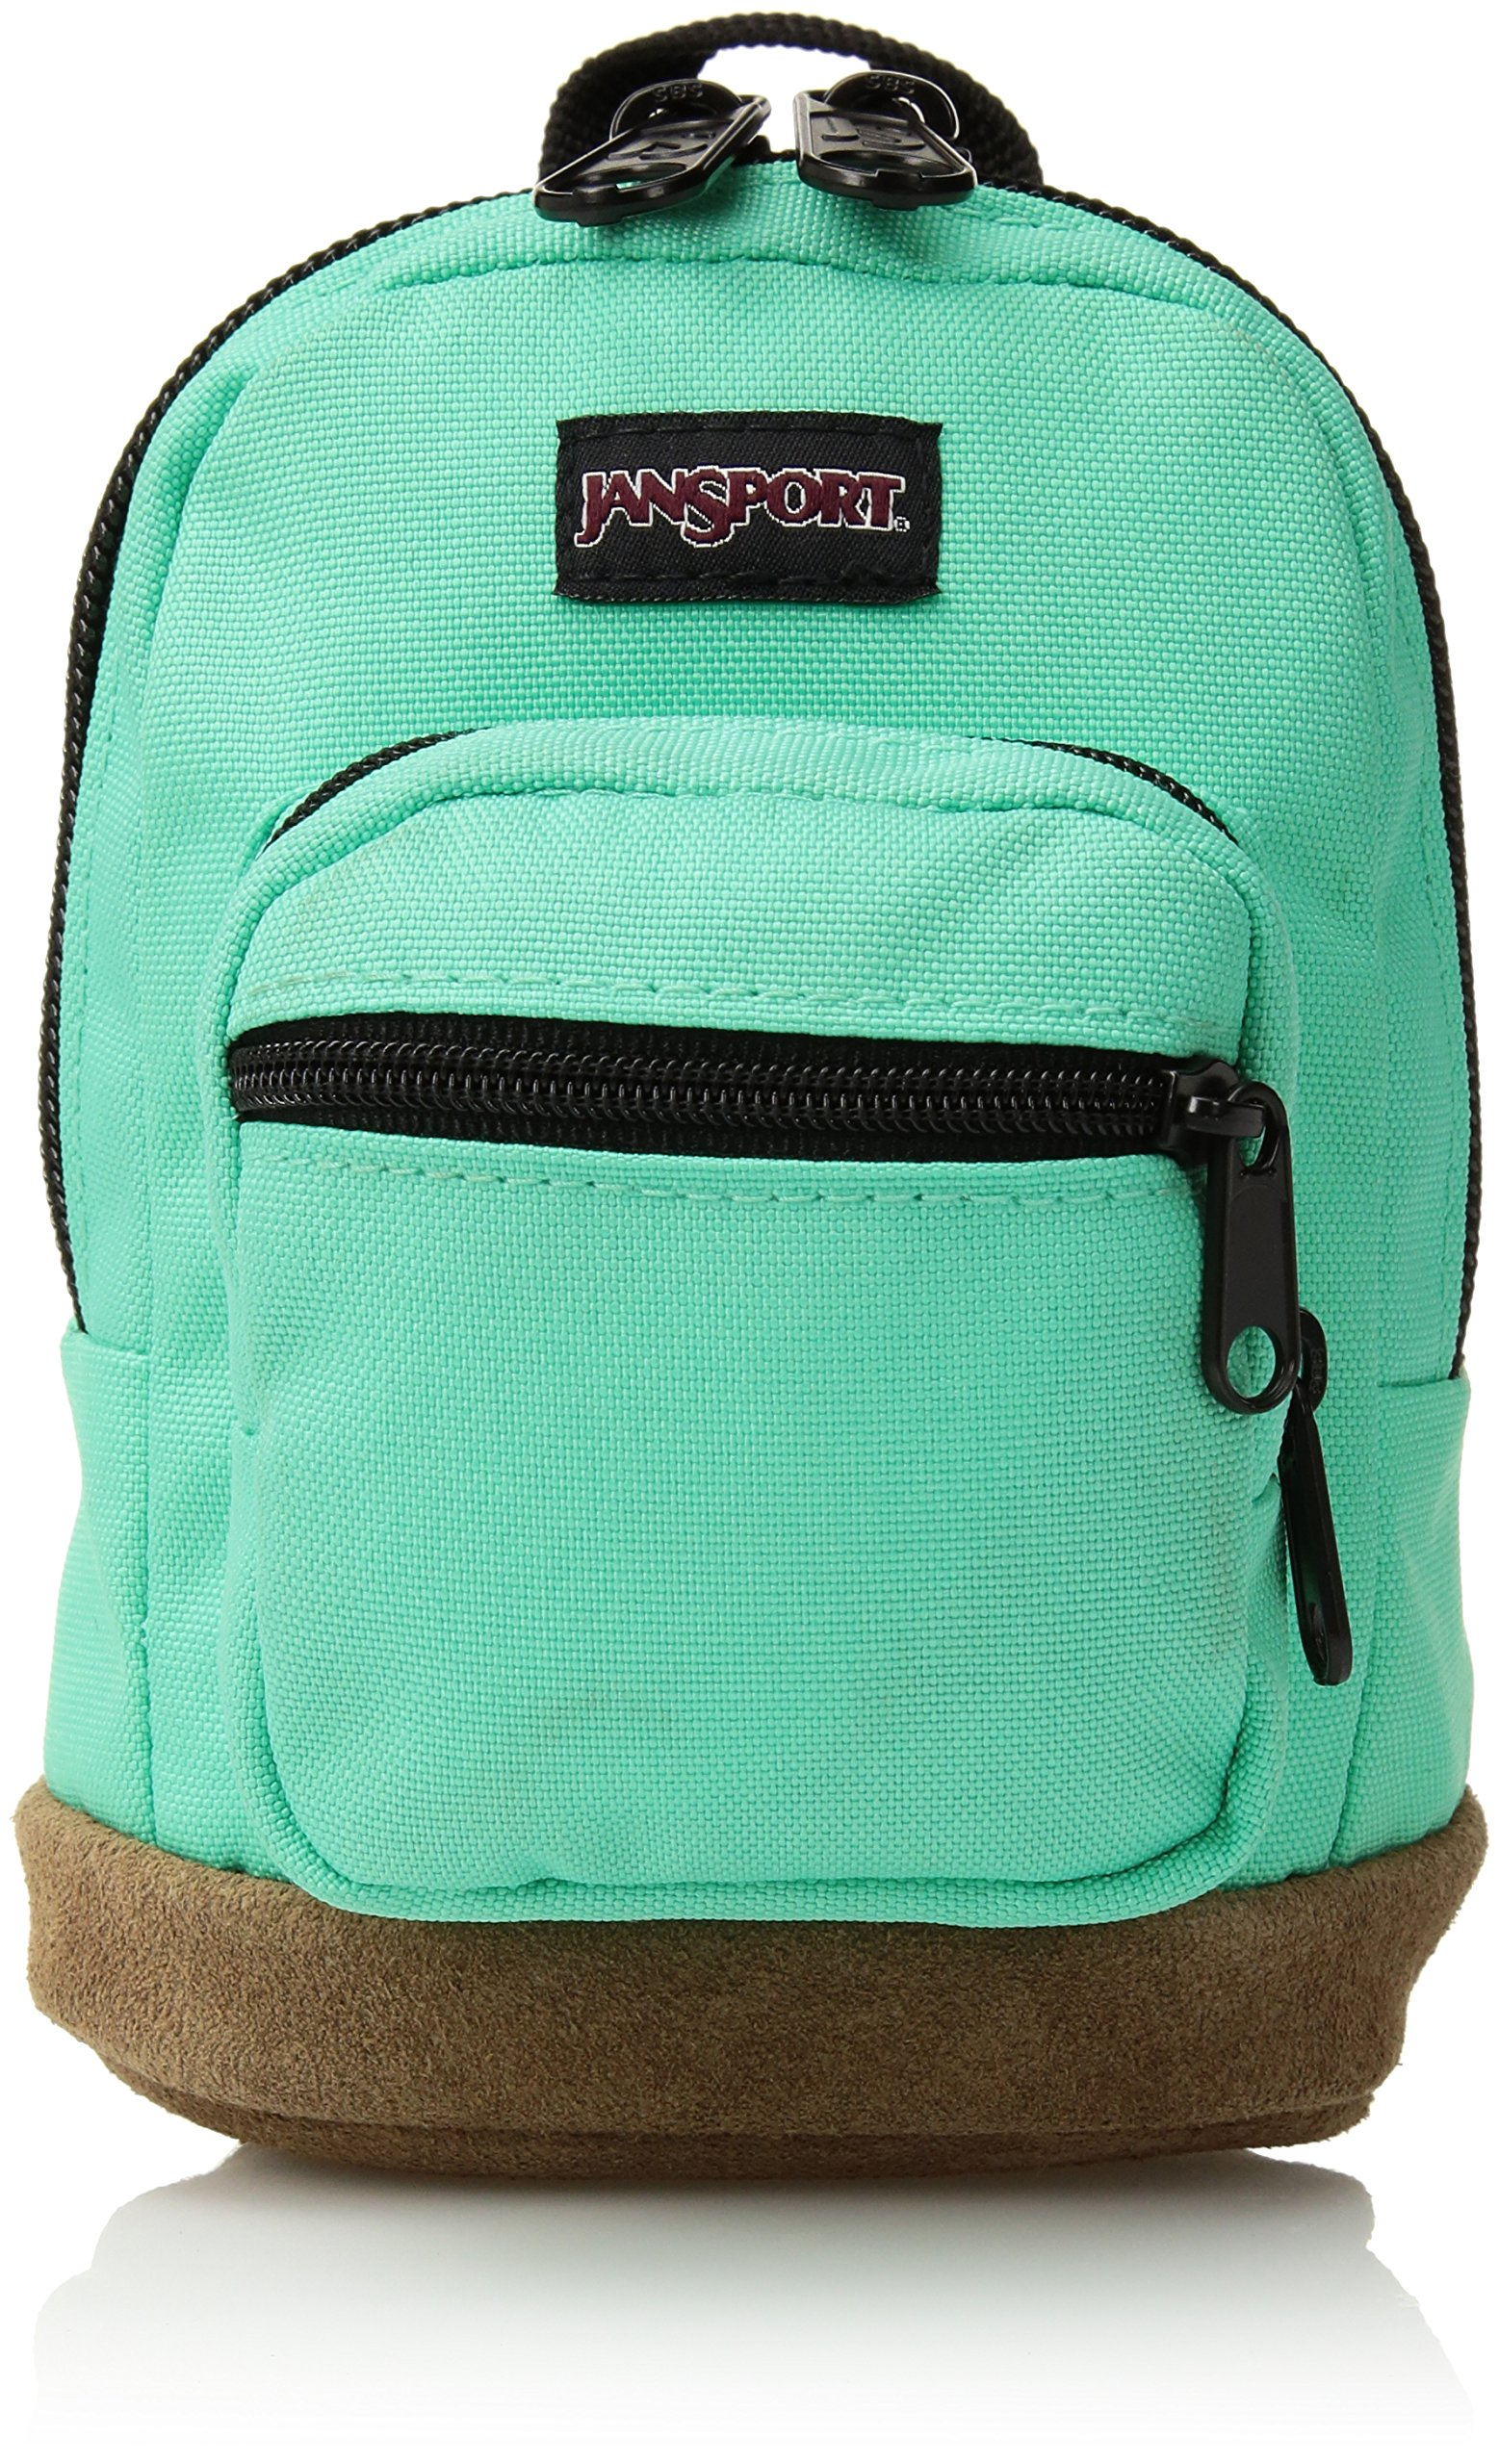 3bc488c619 Get Quotations · JanSport Unisex Right Pouch Seafoam Green Backpack